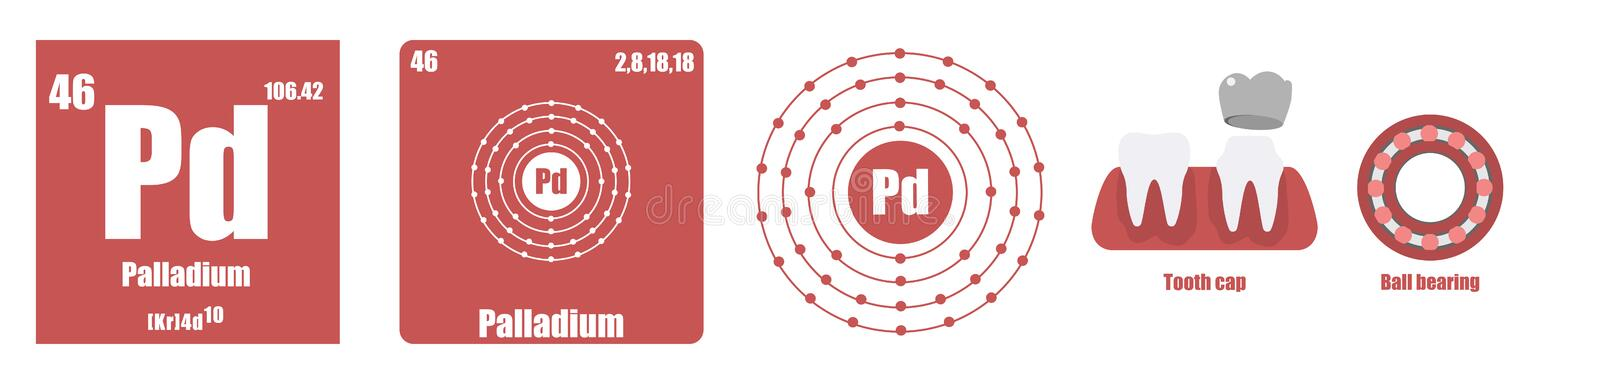 Periodic Table of element Transition metals Palladium royalty free illustration